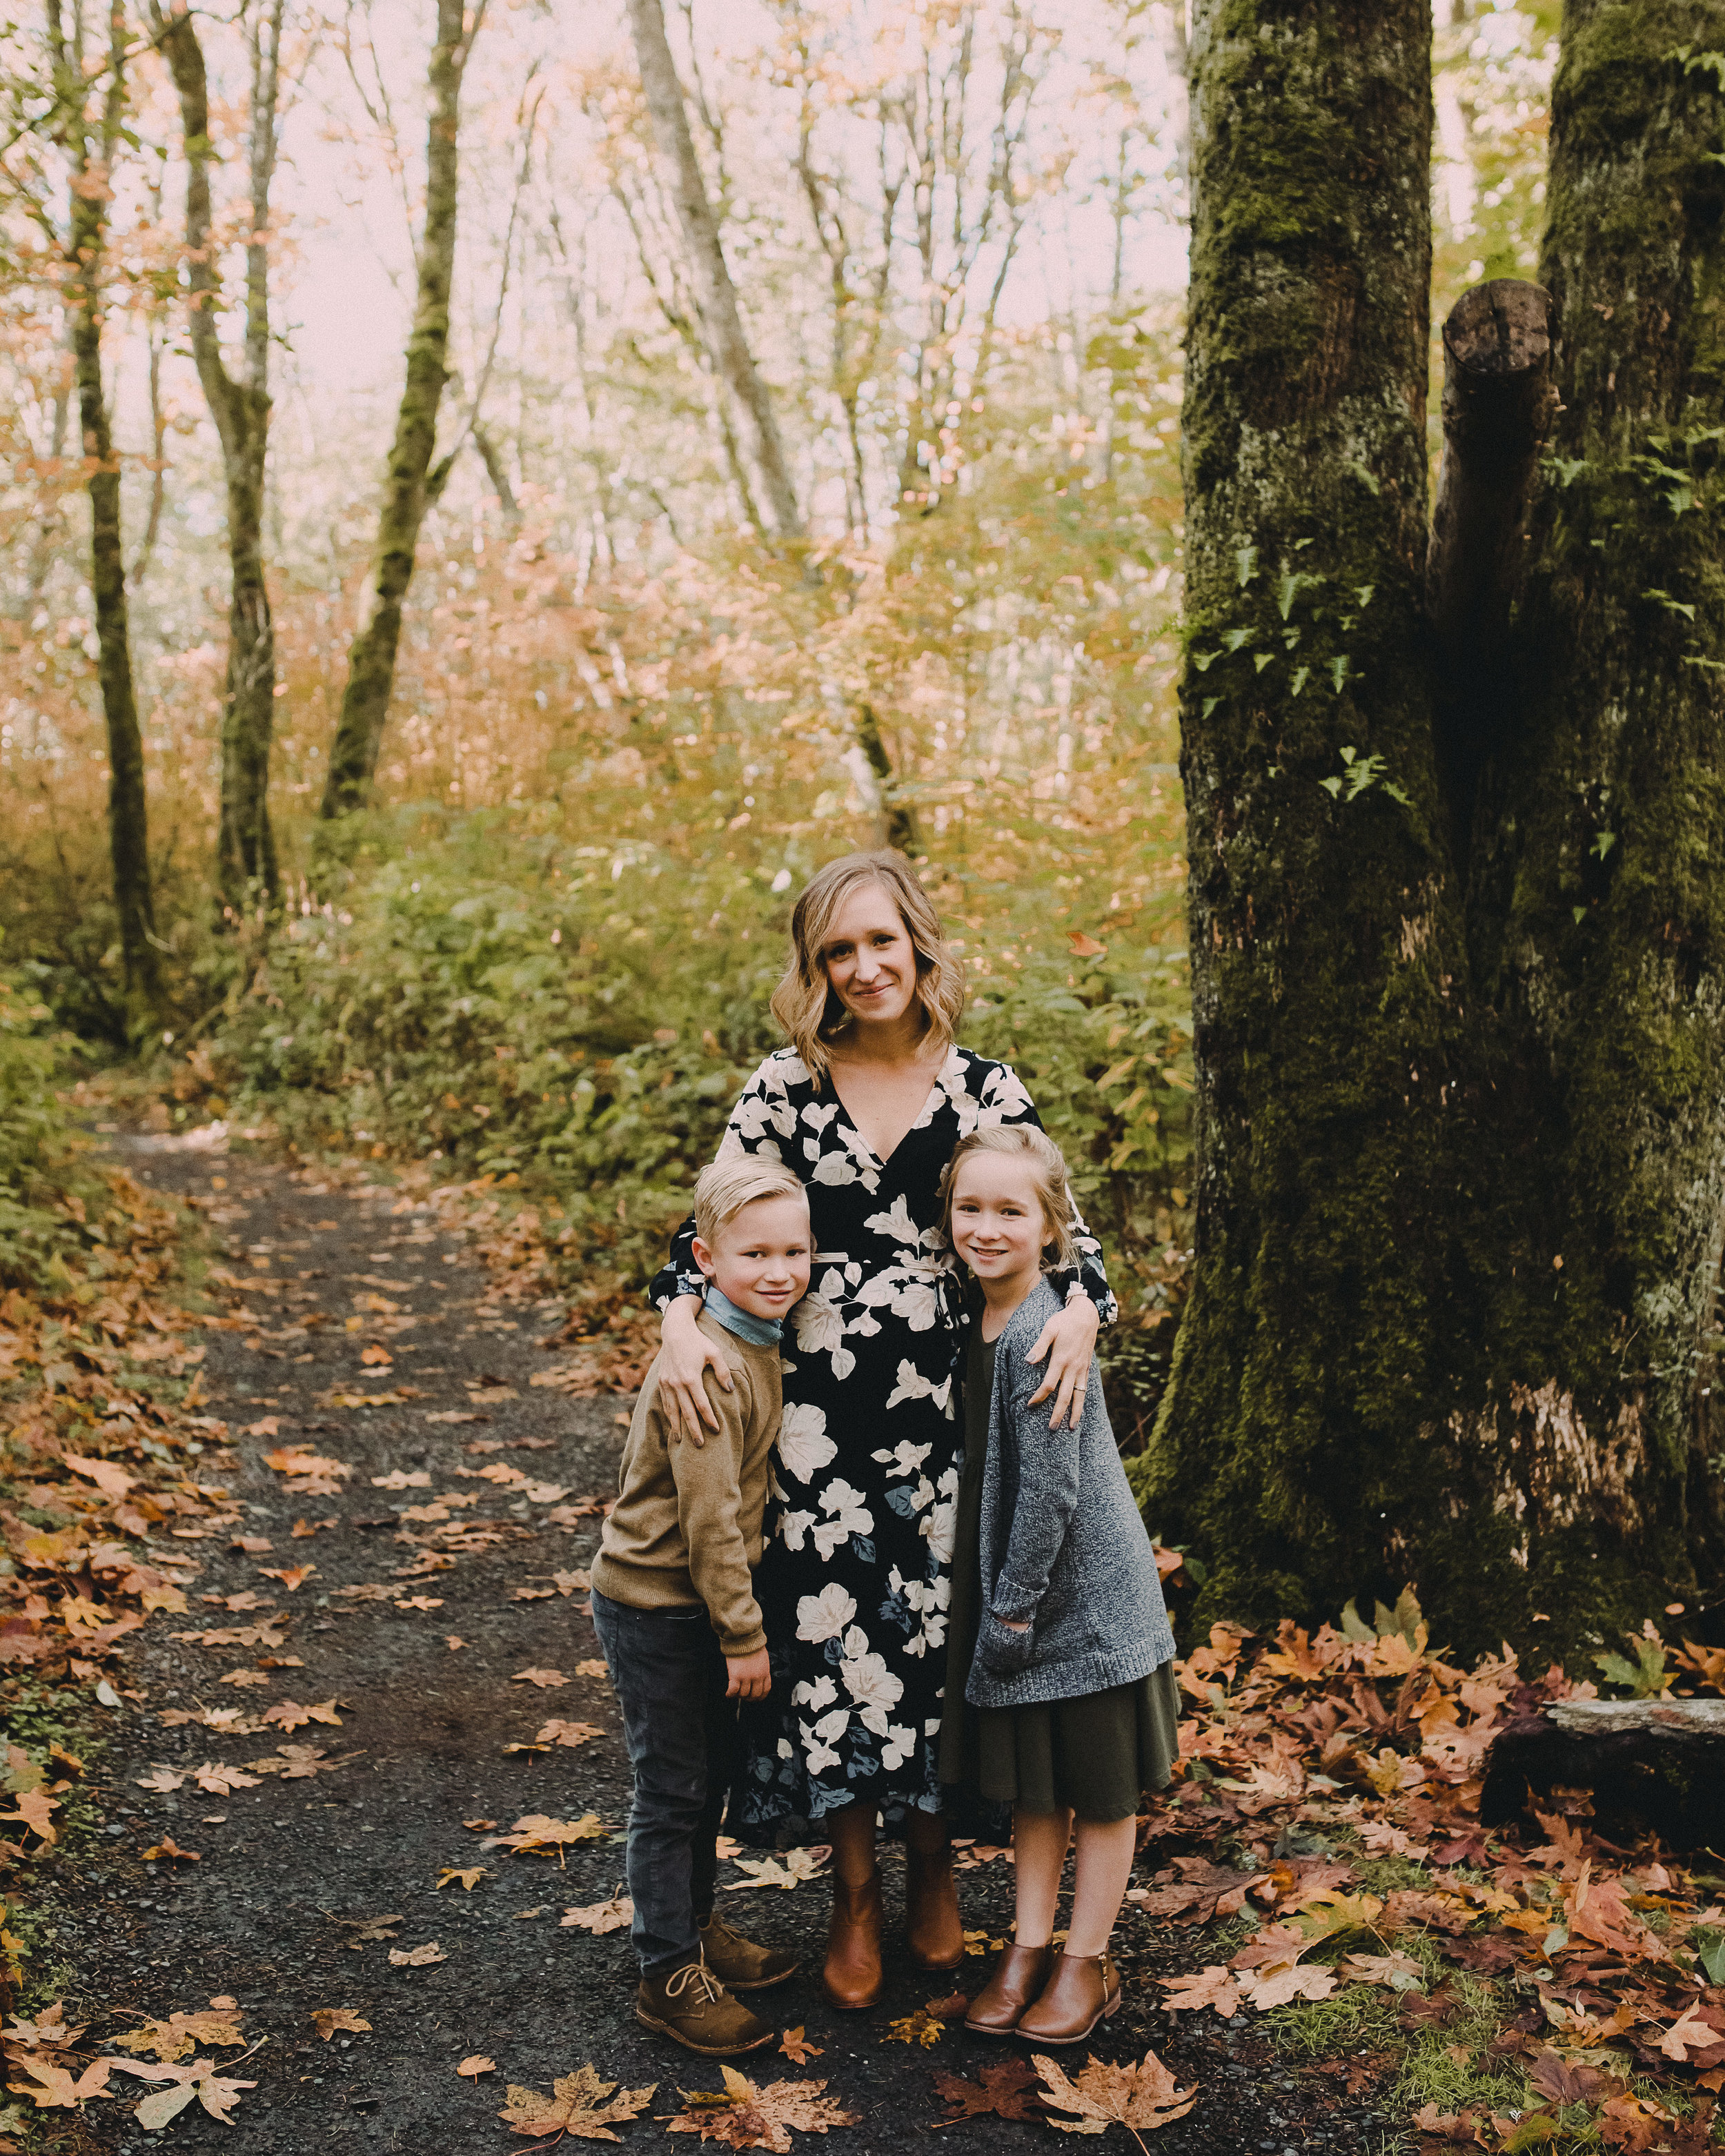 13Family-Photographer-Bellingham-WA-Brianne-Bell-Photography-(Kaiser).jpg